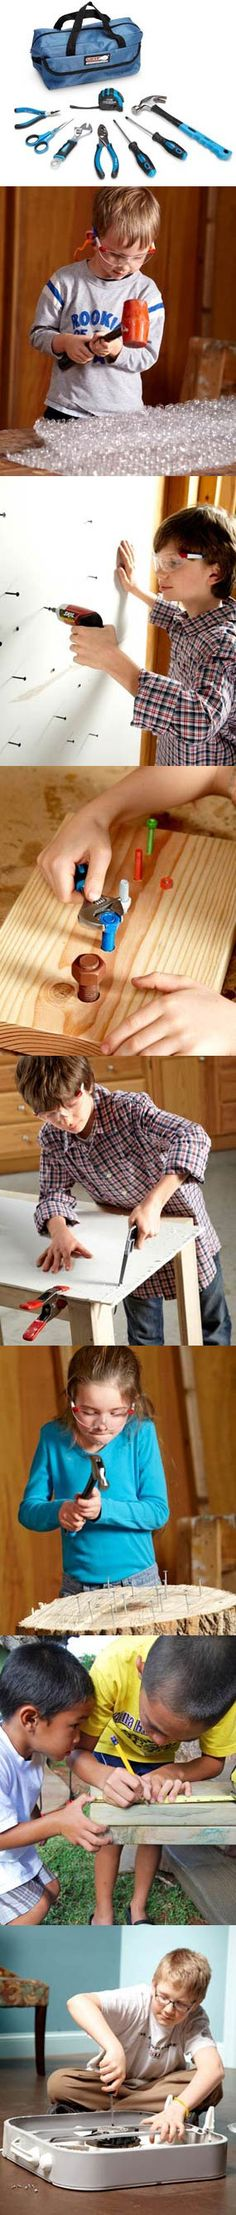 get kids excited about DIY